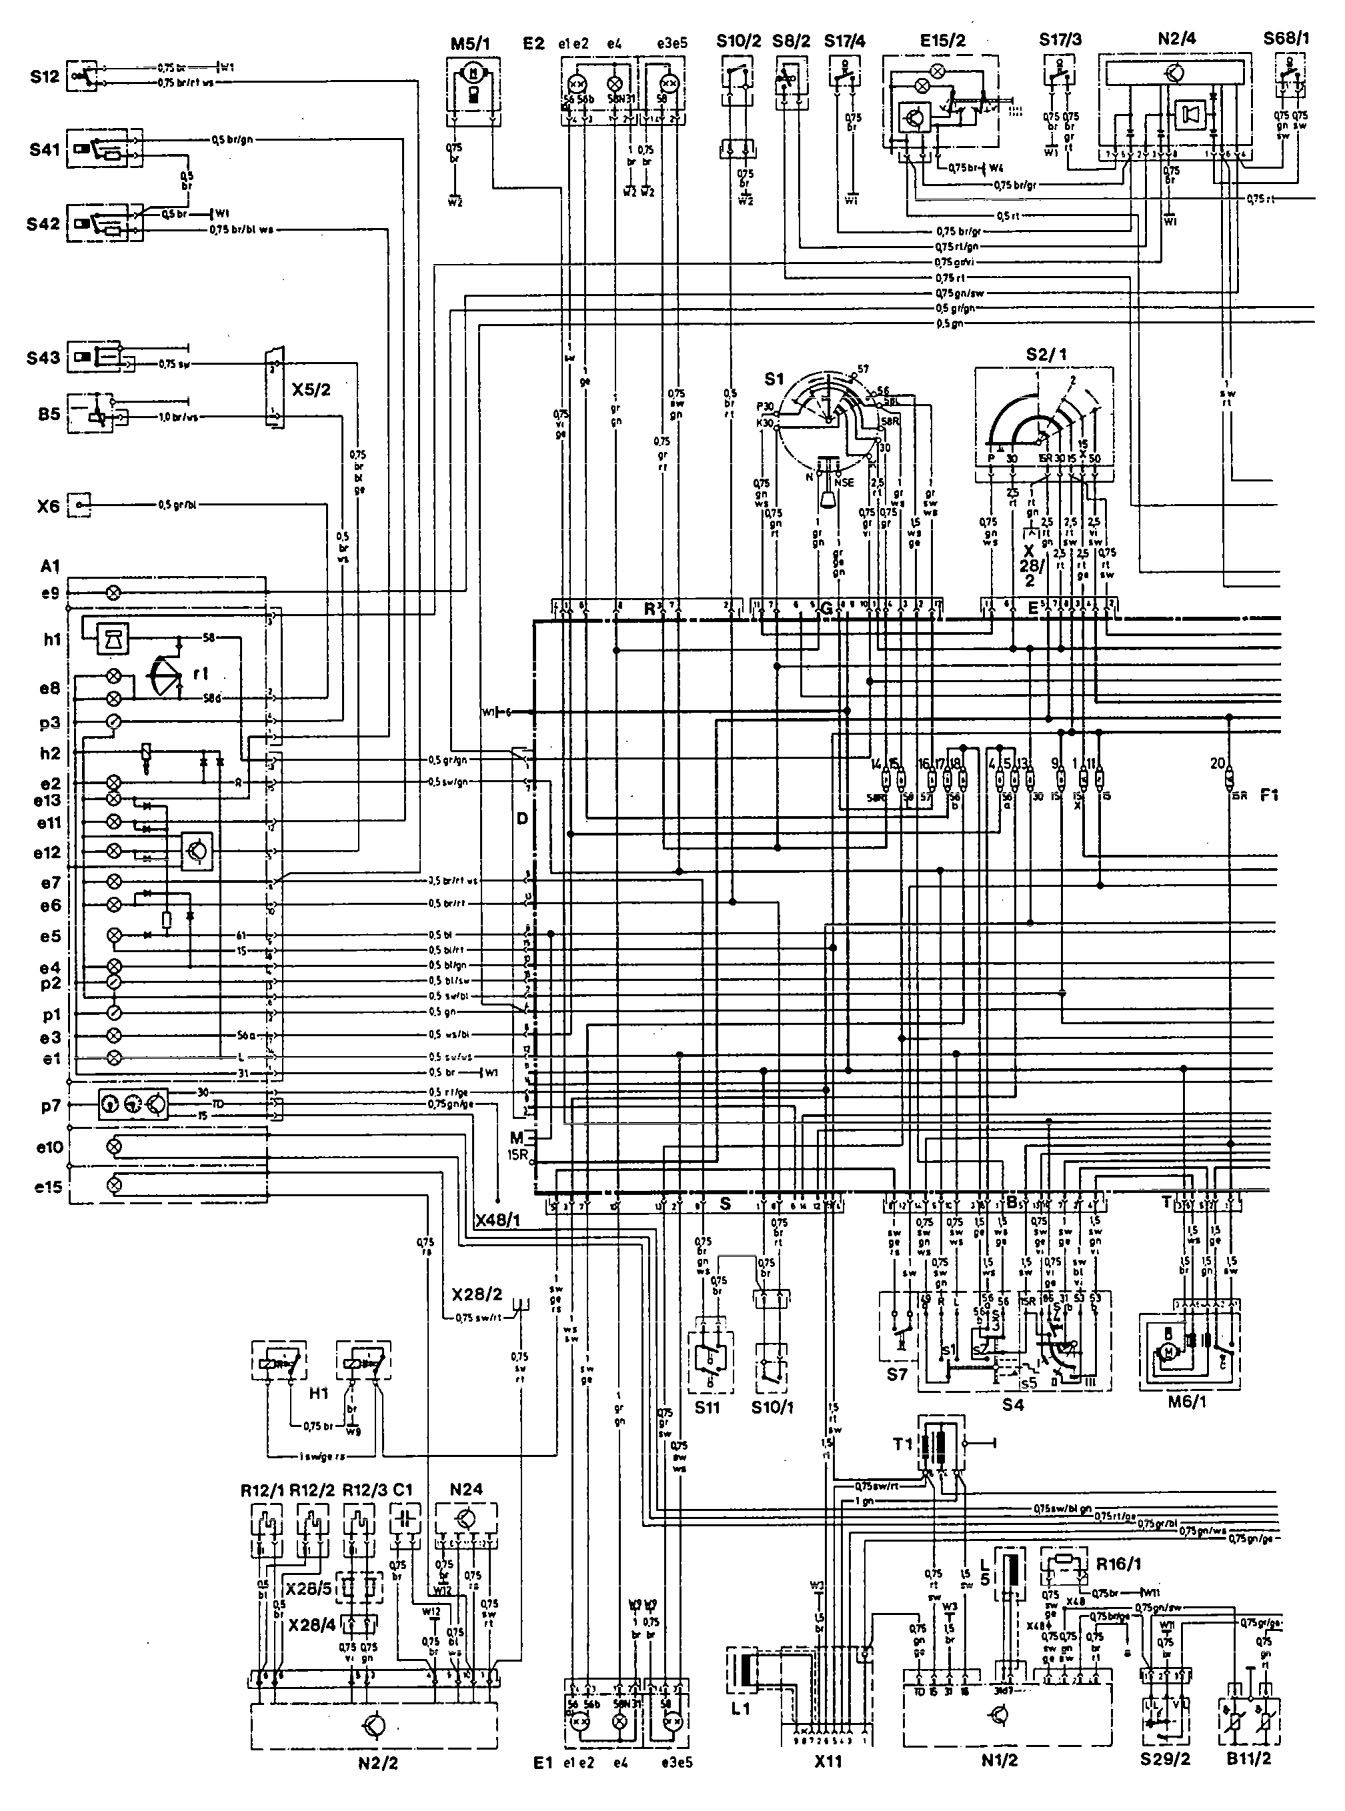 mercedes benz wiring diagrams mercedes benz 190e  1993  wiring diagrams hvac controls mercedes benz w205 wiring diagrams mercedes benz 190e  1993  wiring